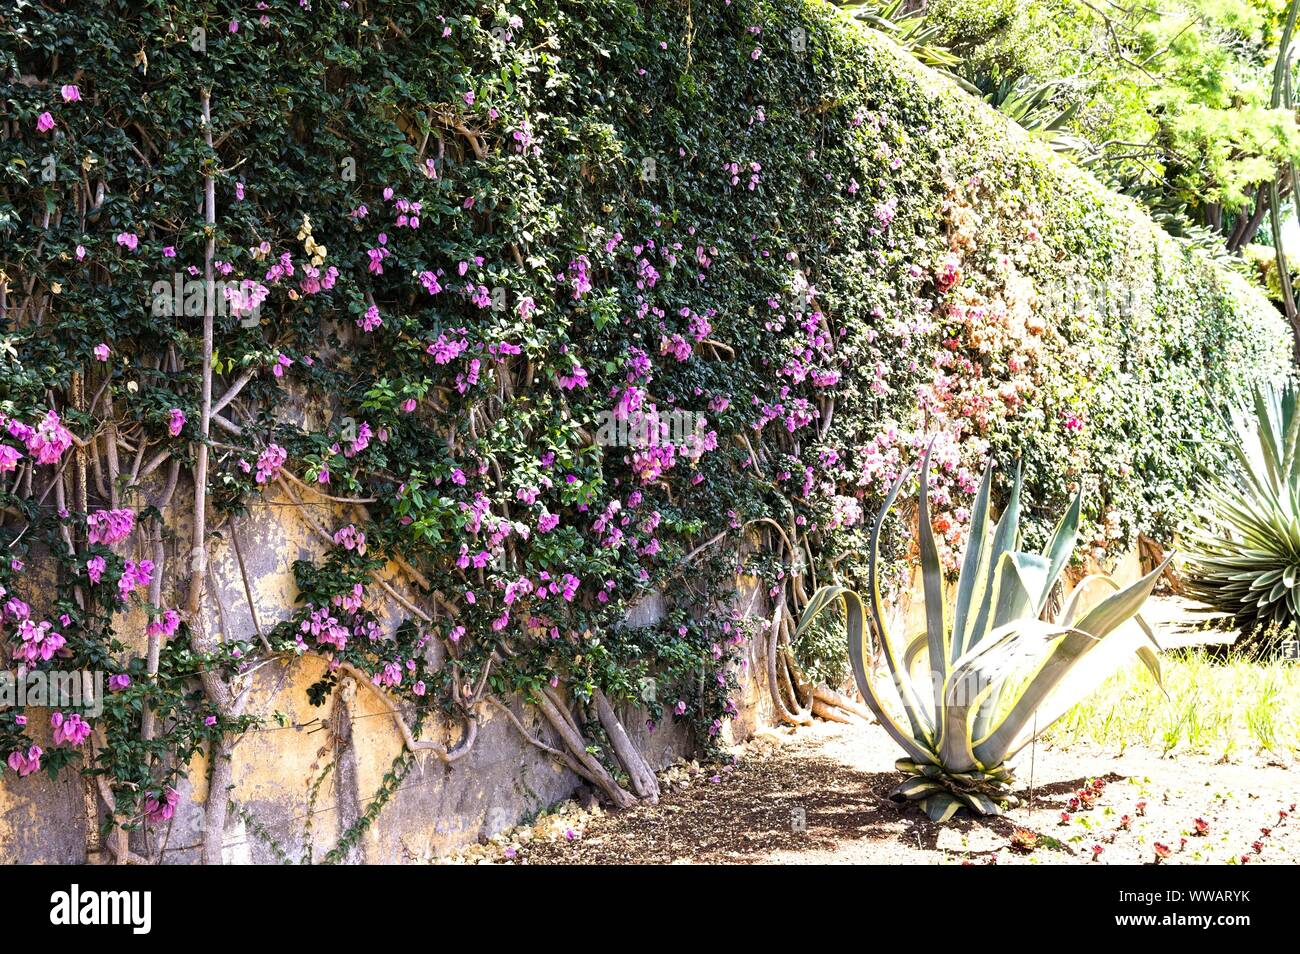 Ivy With Colored Flowers On The Wall Of The Botanical Garden Of Funchal Madeira Portugal Stock Photo Alamy